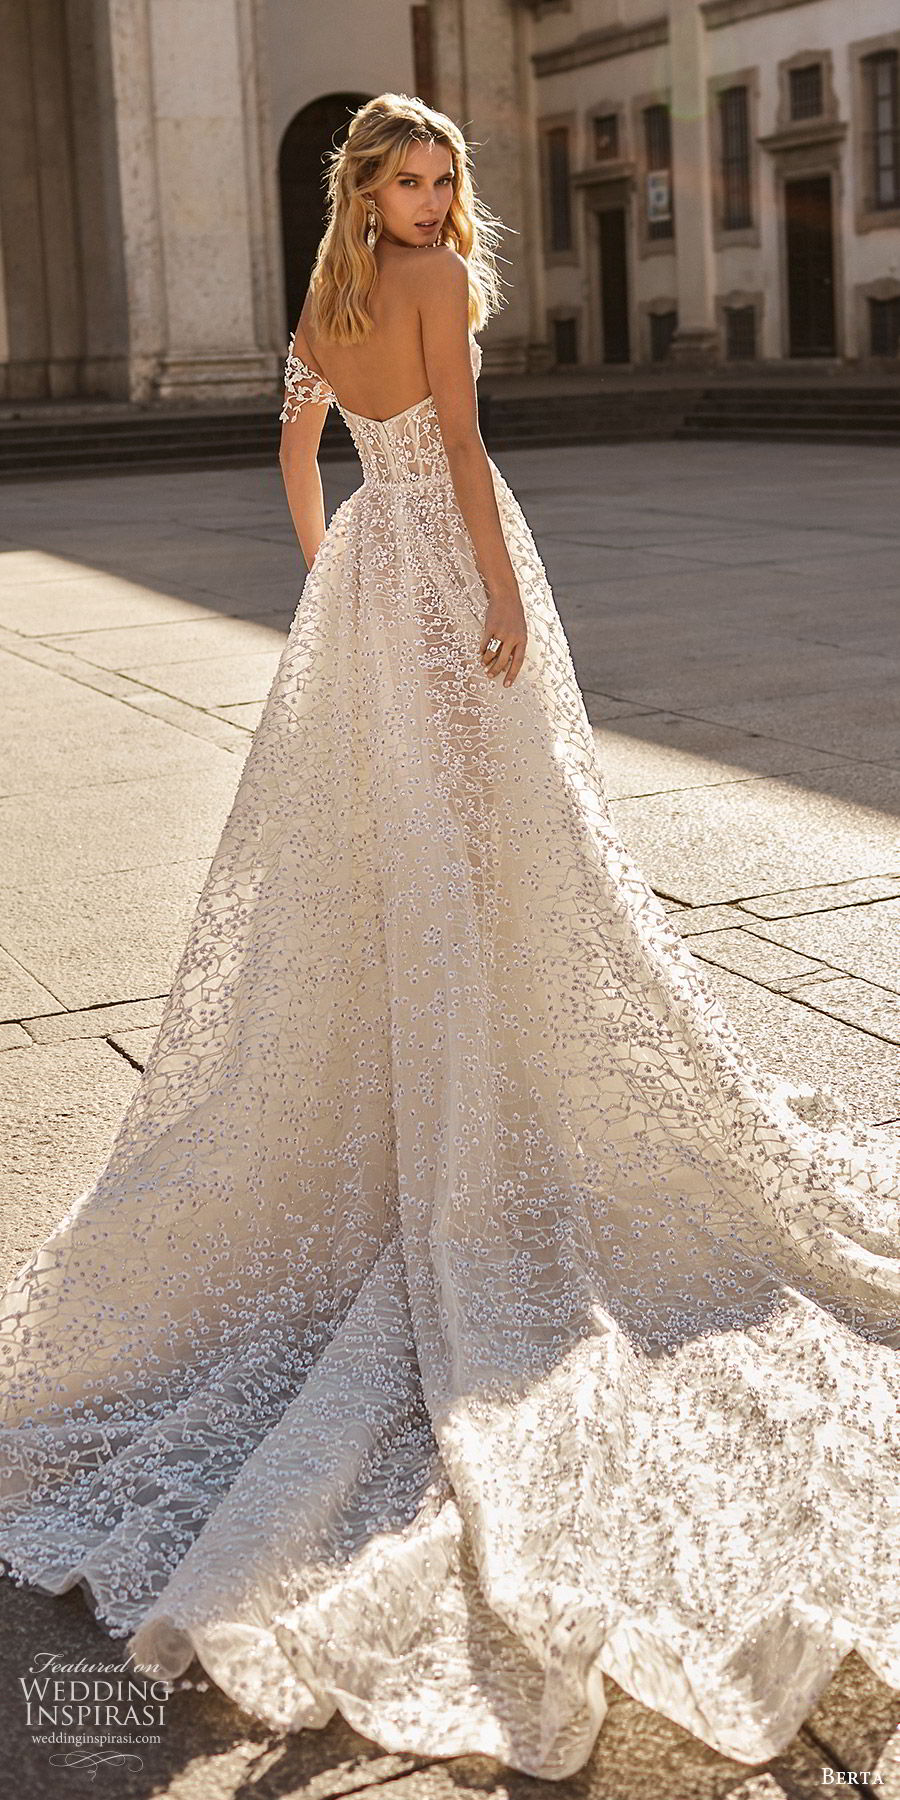 berta spring 2020 bridal one shoulder sweetheart fully embellished beaded a line ball gown wedding dress (15) romantic glitzy princess cathedral train bv